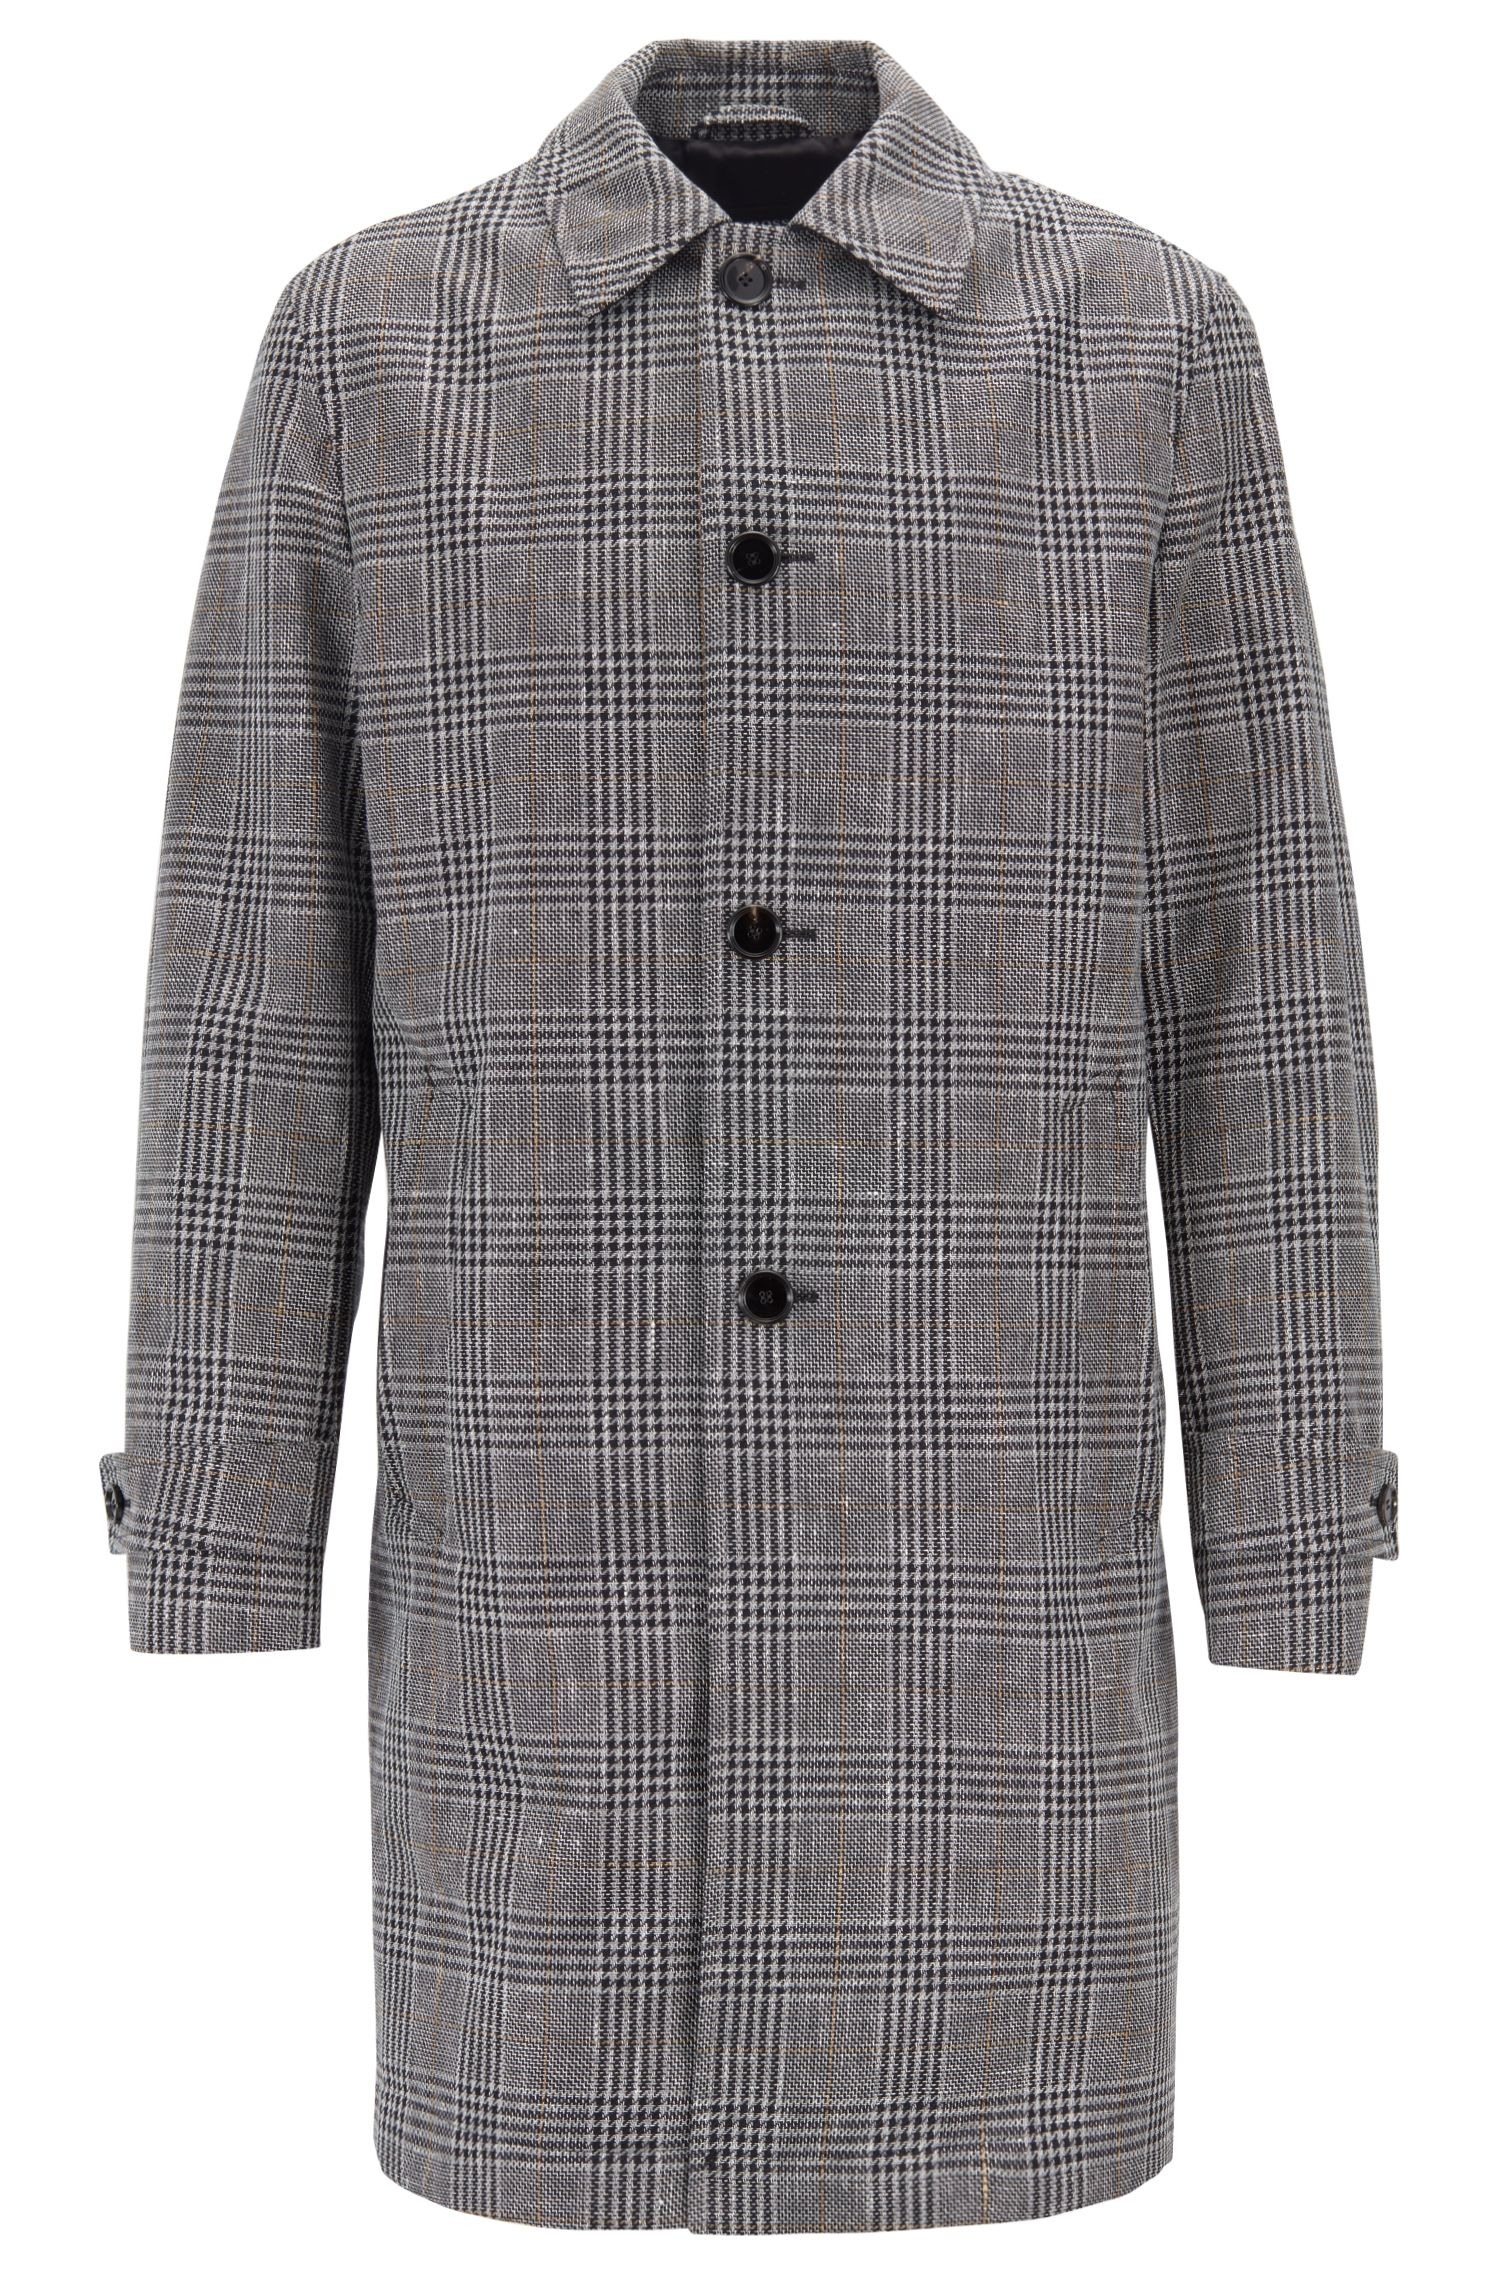 Water-repellent coat in a checked linen-cotton blend, Grey